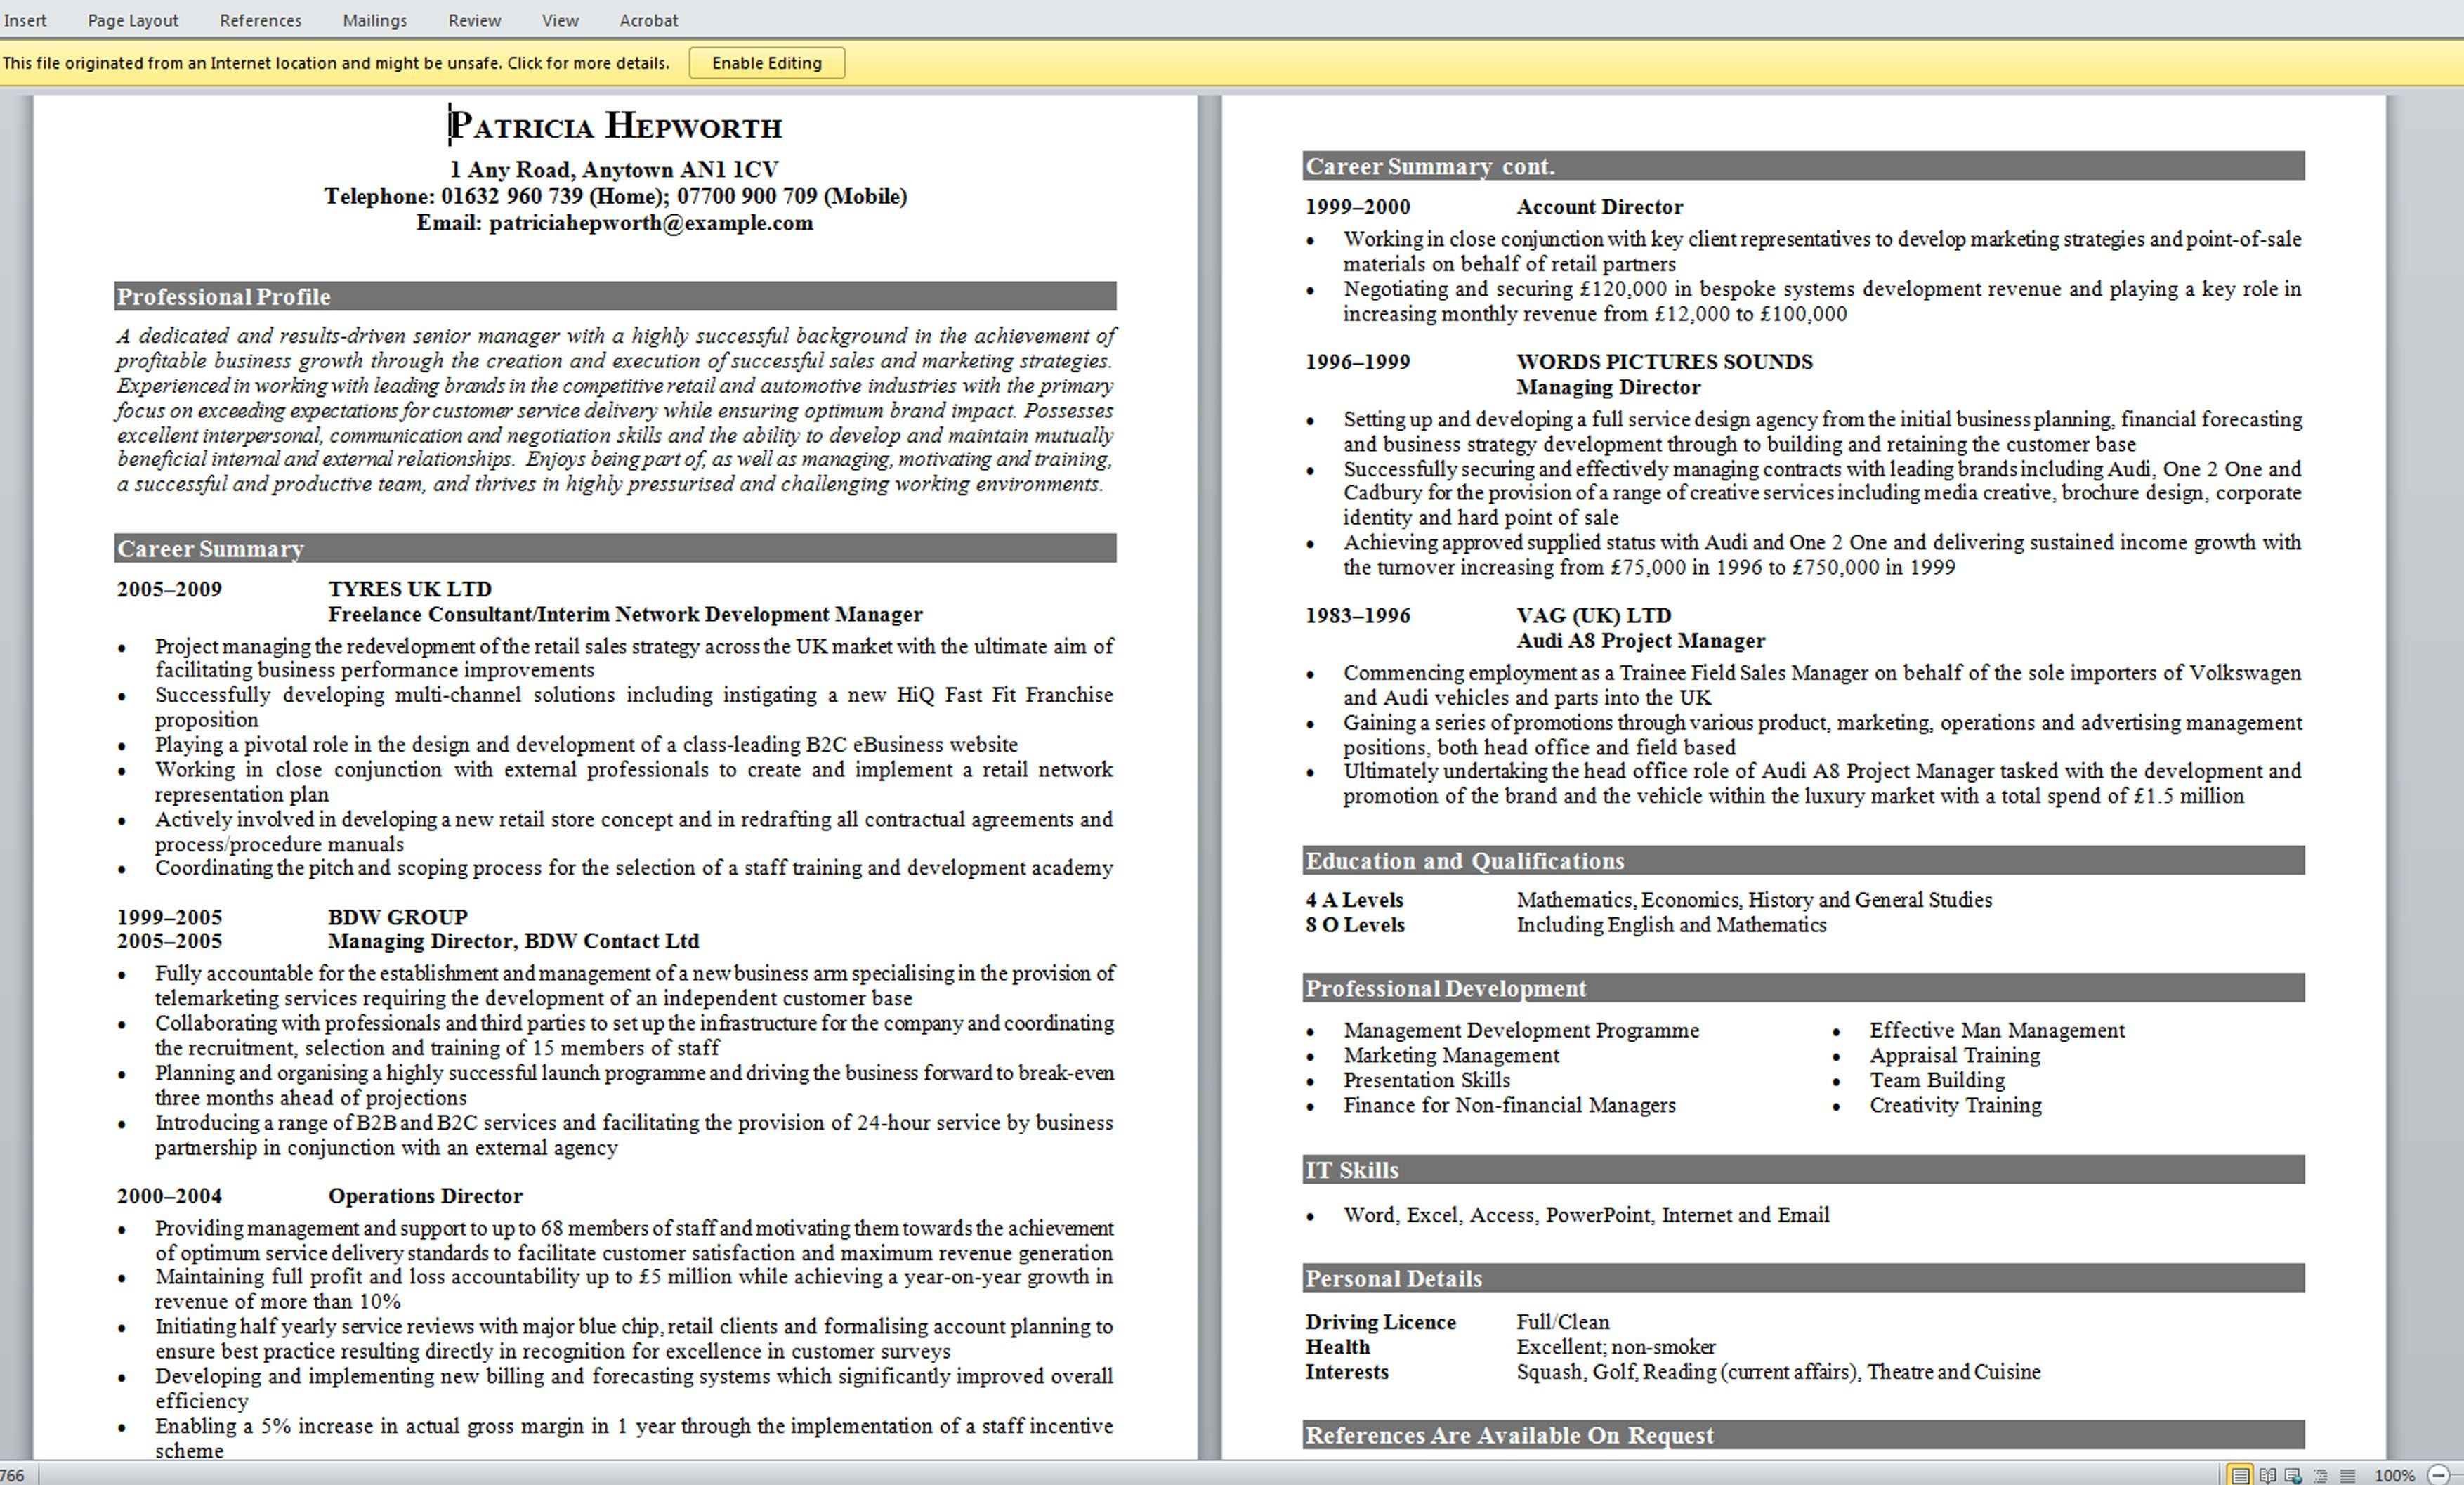 What Should A Good Resume Look Like Interesting Design Ideas Sample Good Resume Image Gallery Customer .